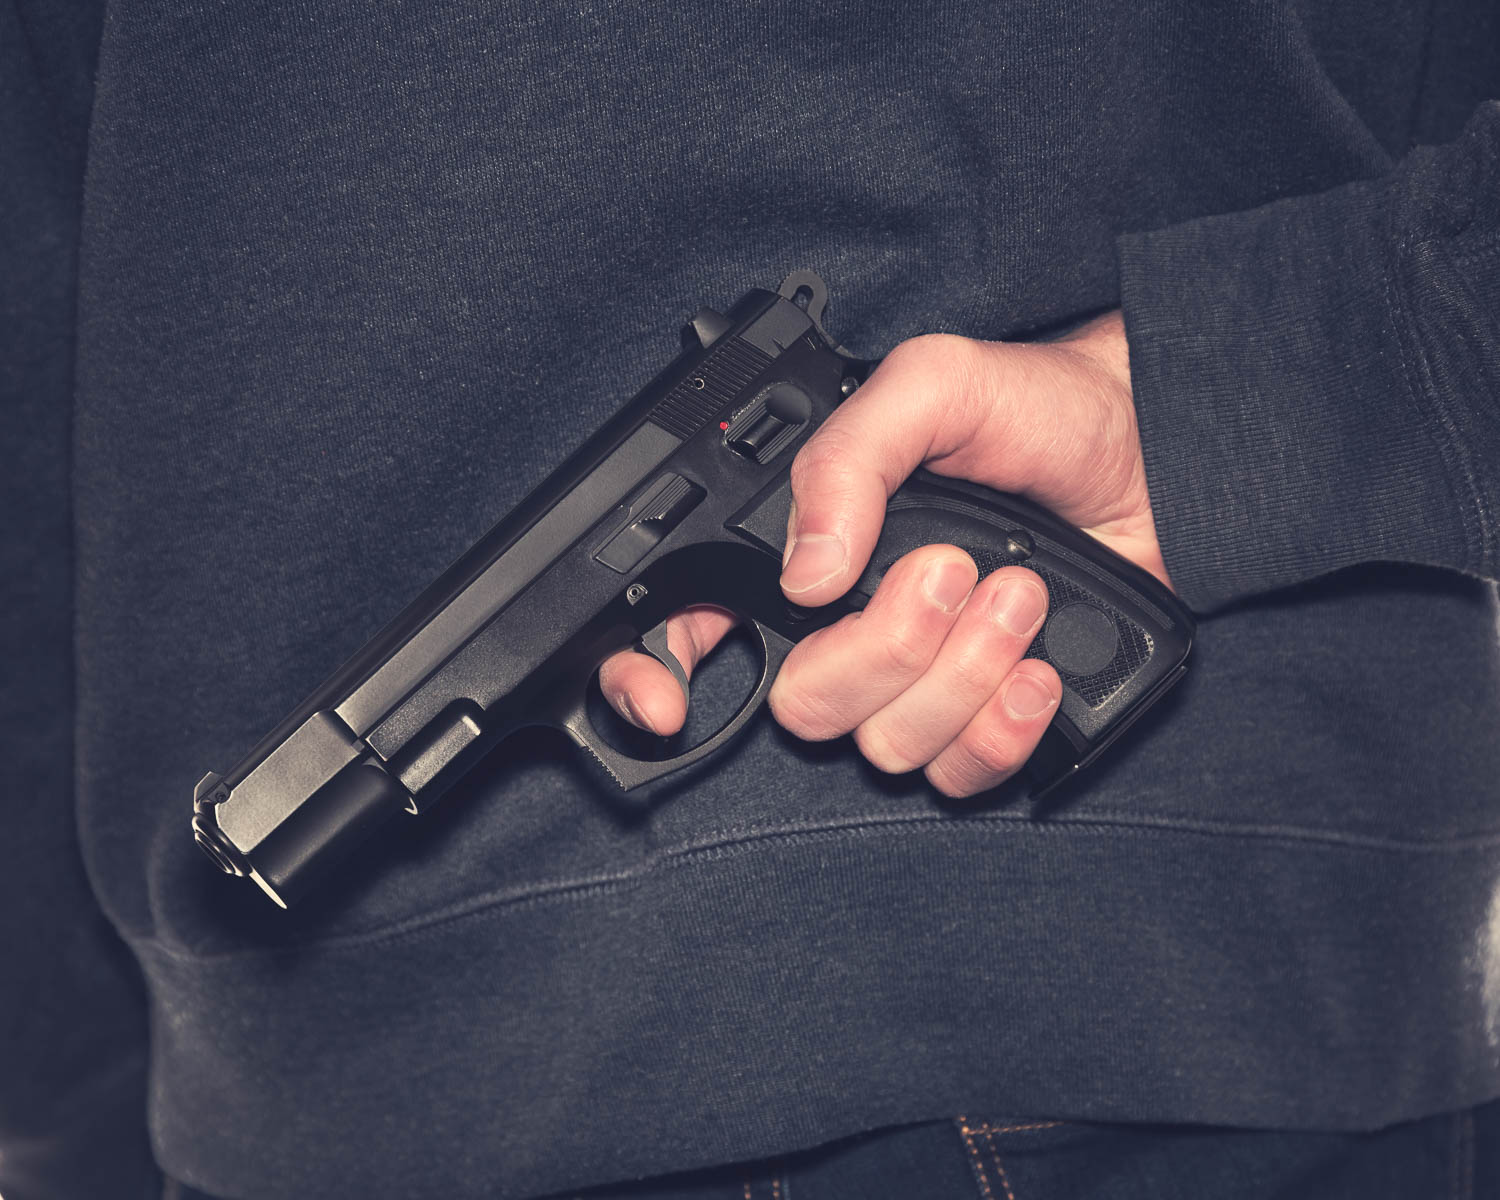 a person holds a hand gun, hidden, behind their back in South Florida. This could be considered a serious crime